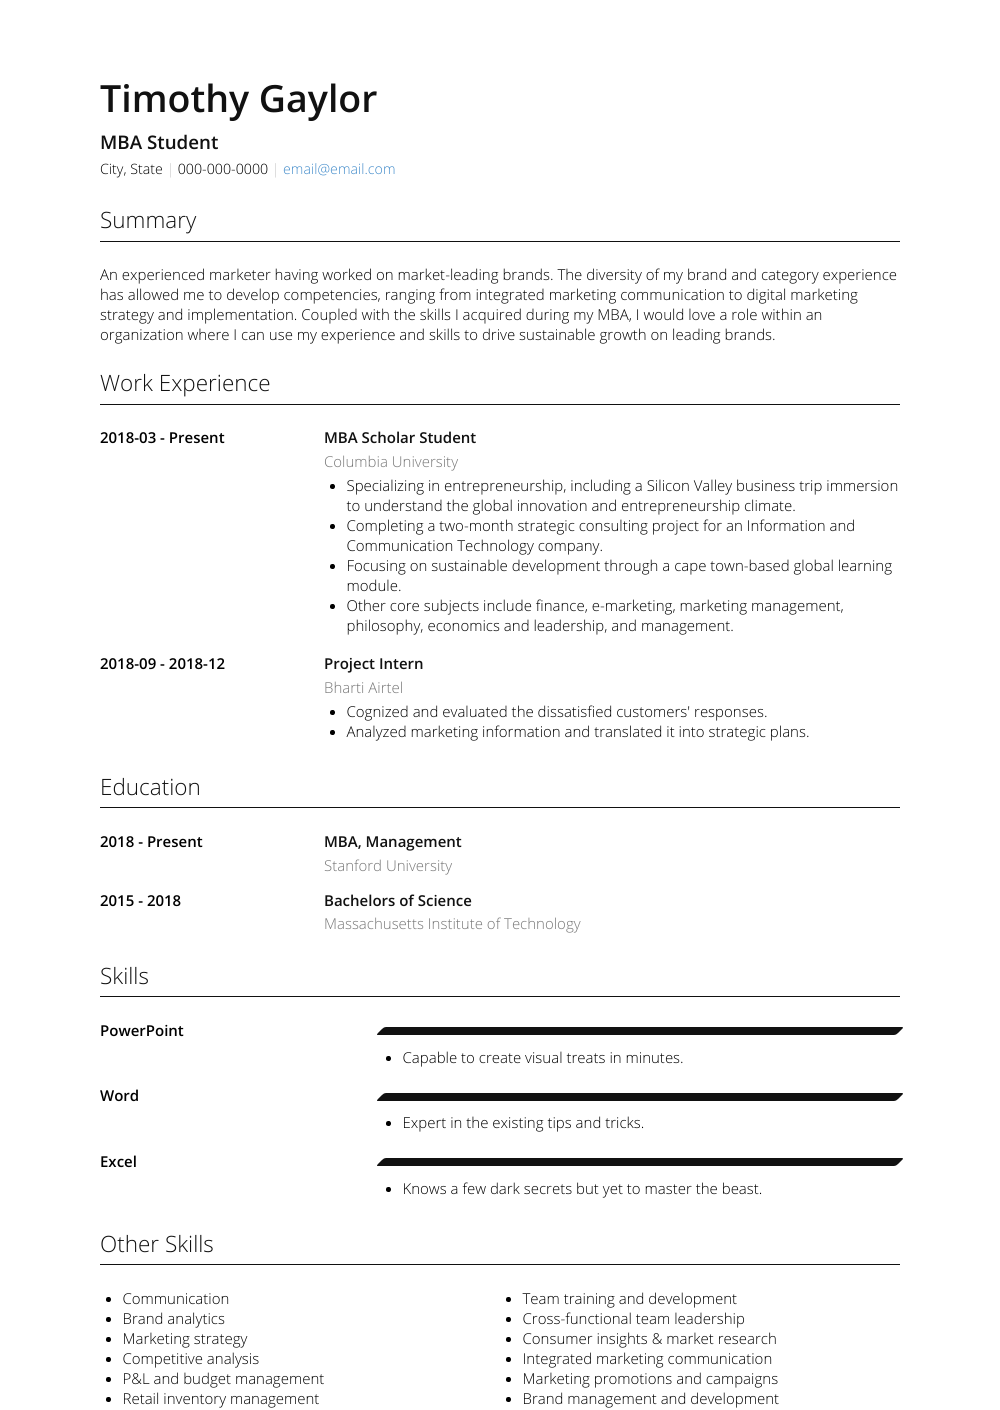 Mba Student - Resume Samples and Templates | VisualCV